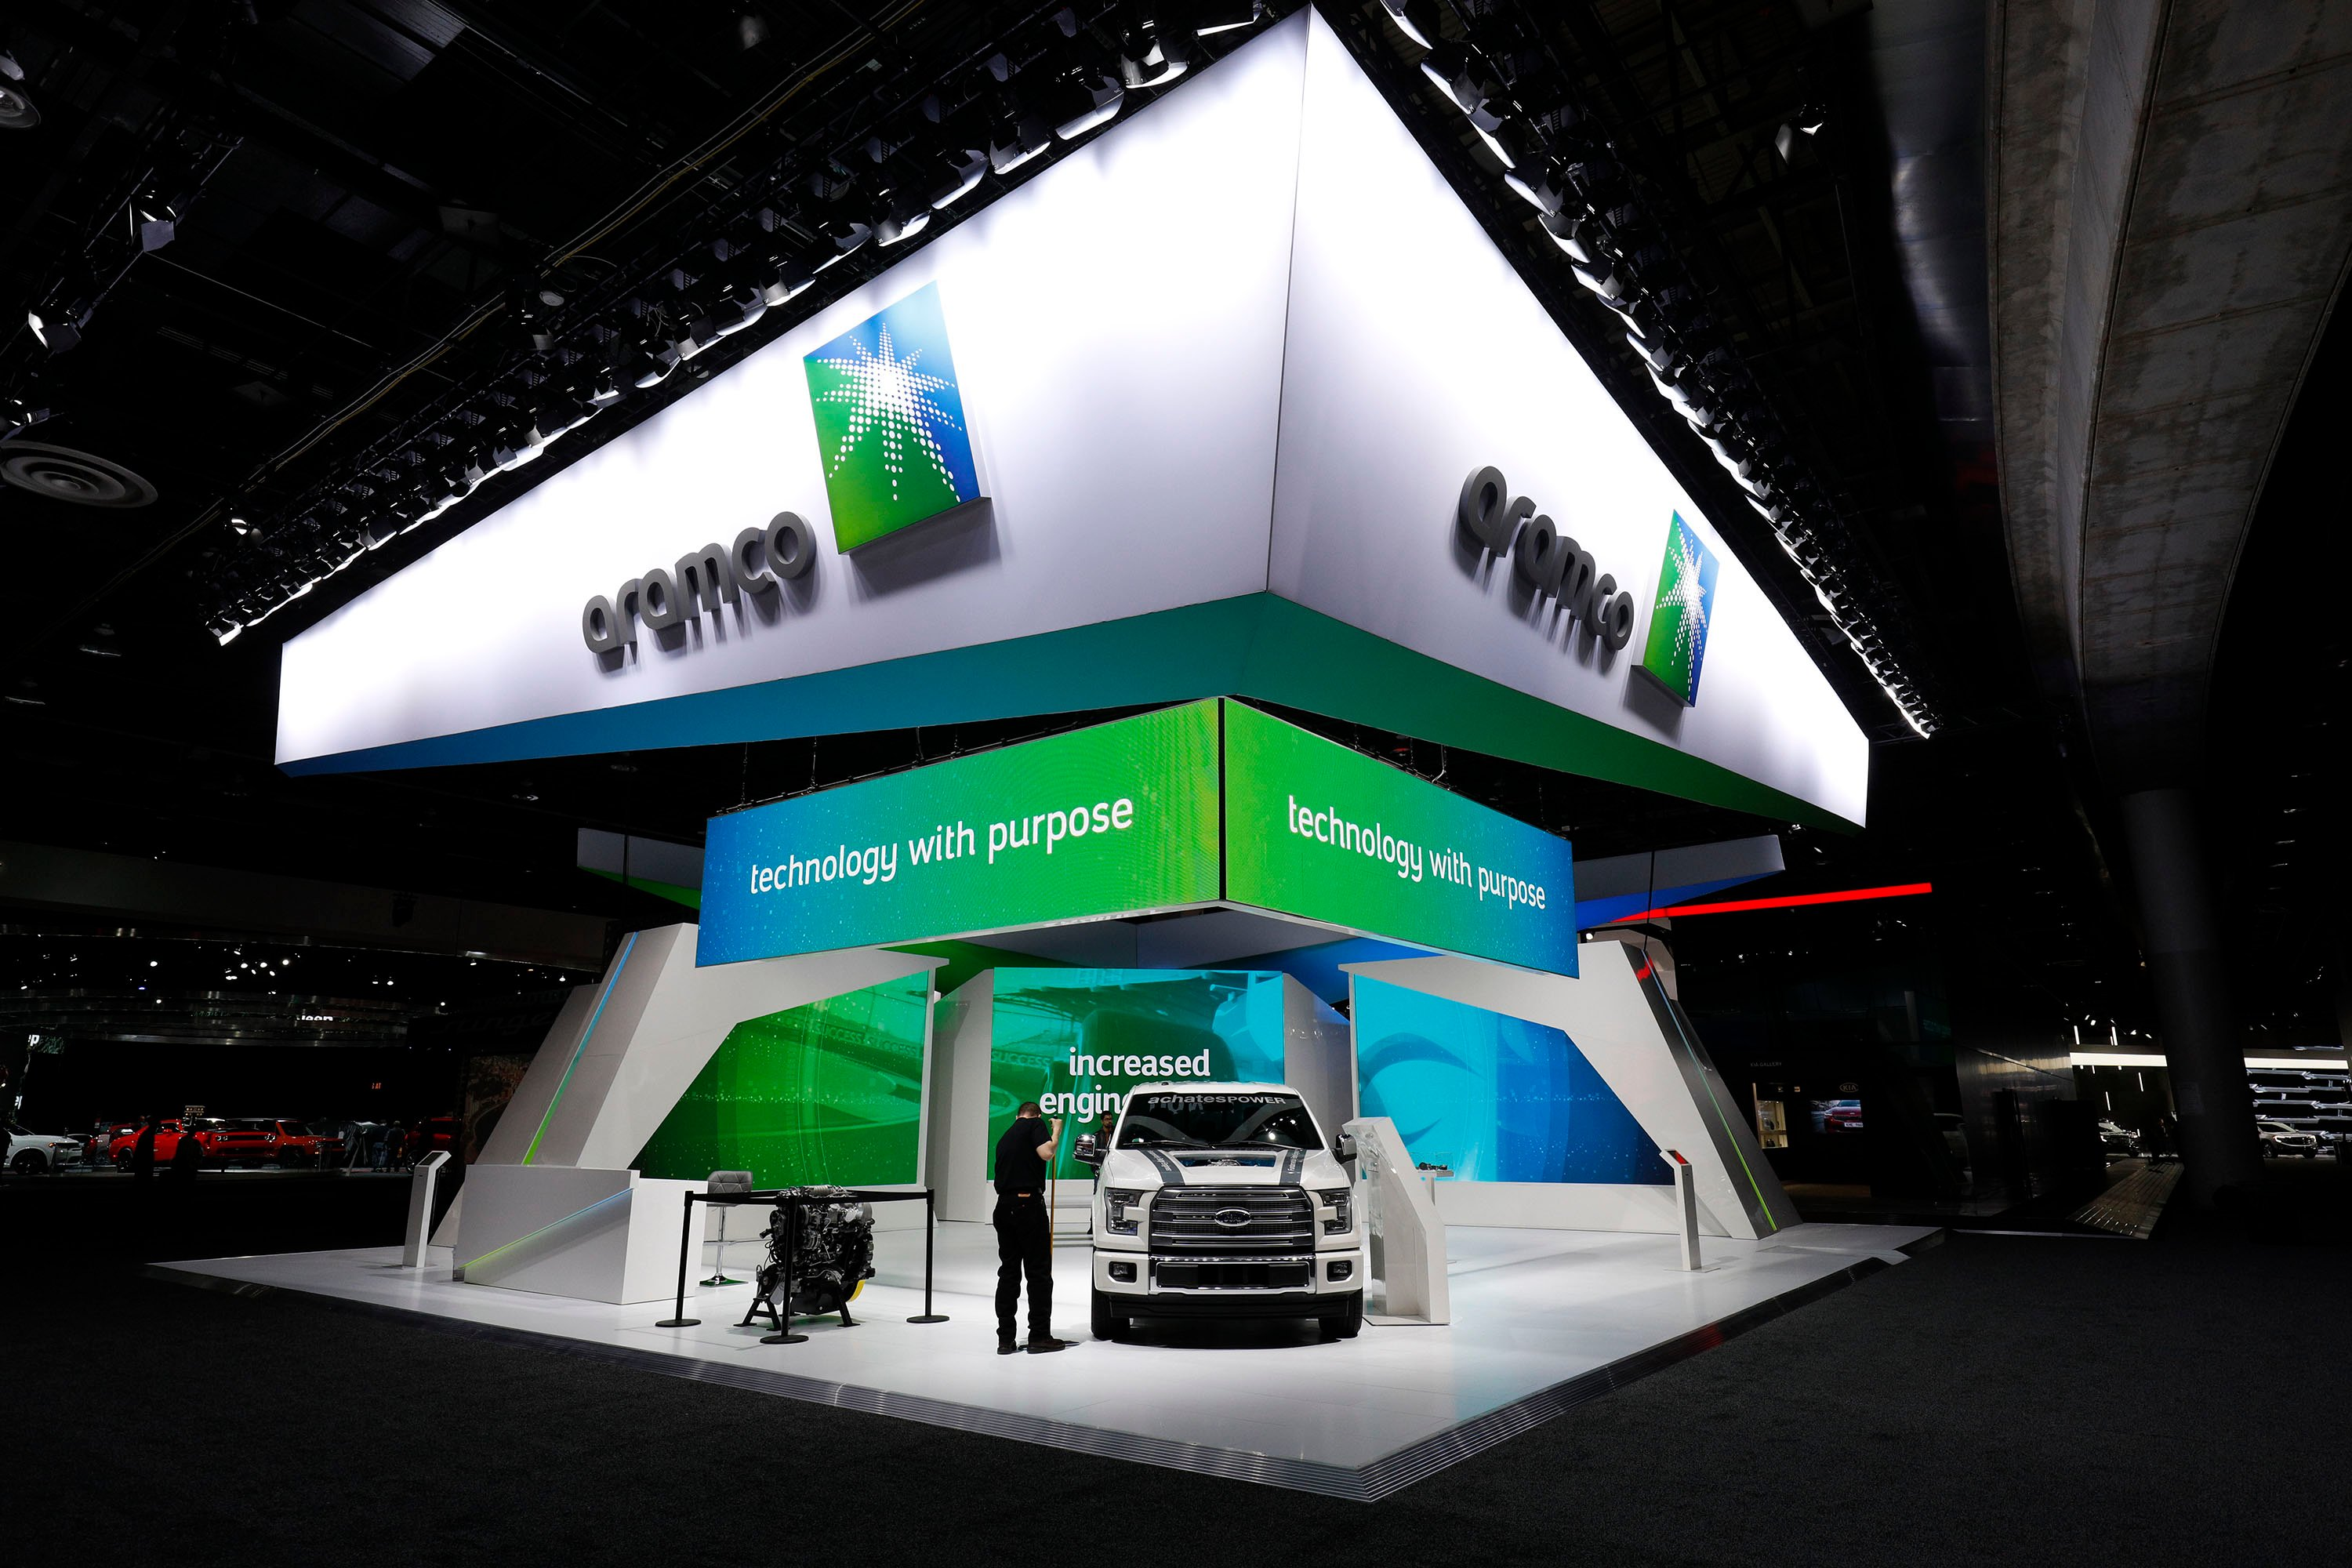 The Aramco exhibit is shown at the 2018 North American International Auto Show January 16, 2018 in Detroit, Michigan. (Bill Pugliano/Getty Images)